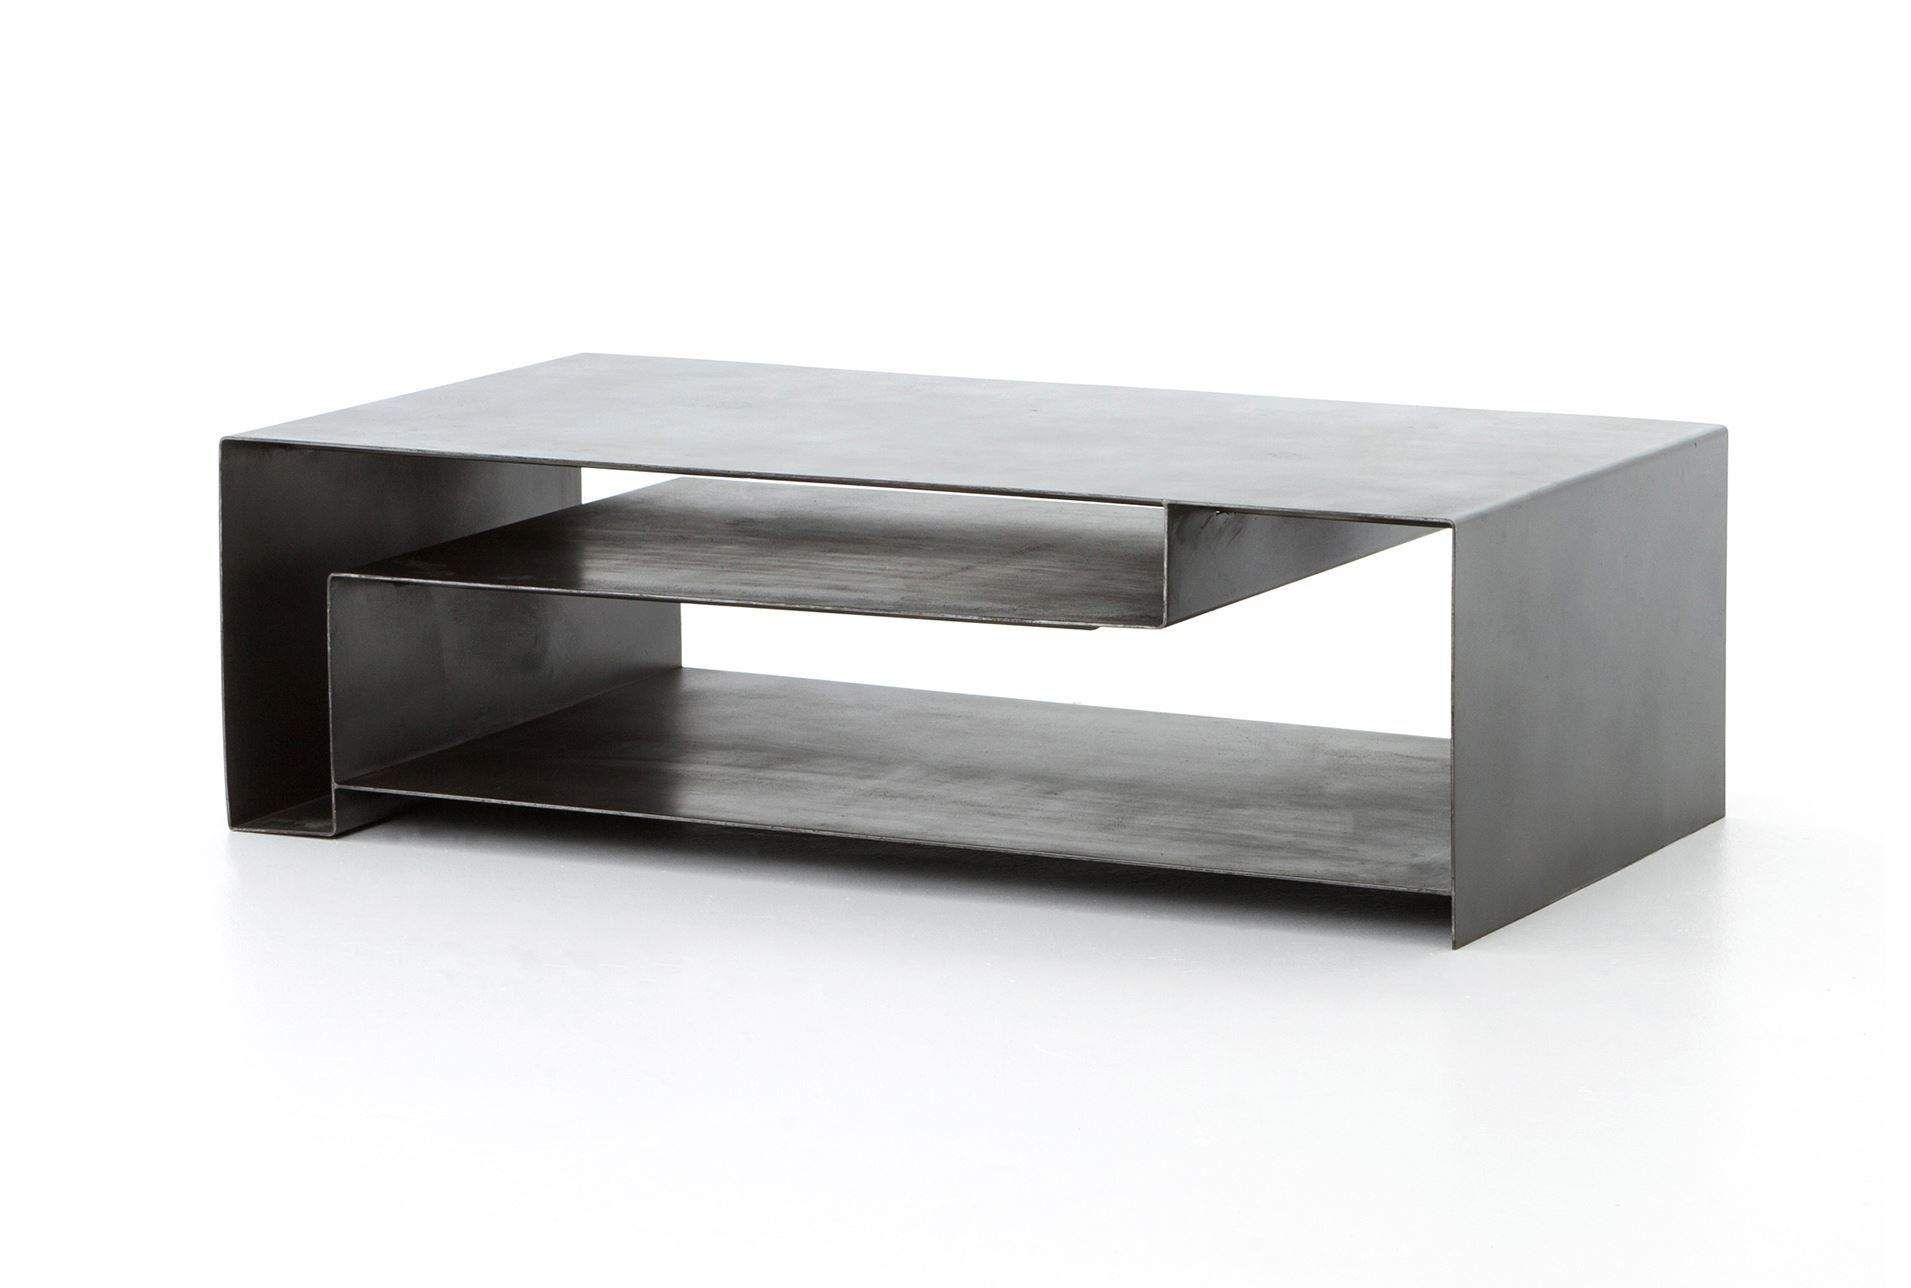 Otb Cyprus Cocktail Table Signature Low Coffee Table Coffee Table Table [ 1288 x 1911 Pixel ]